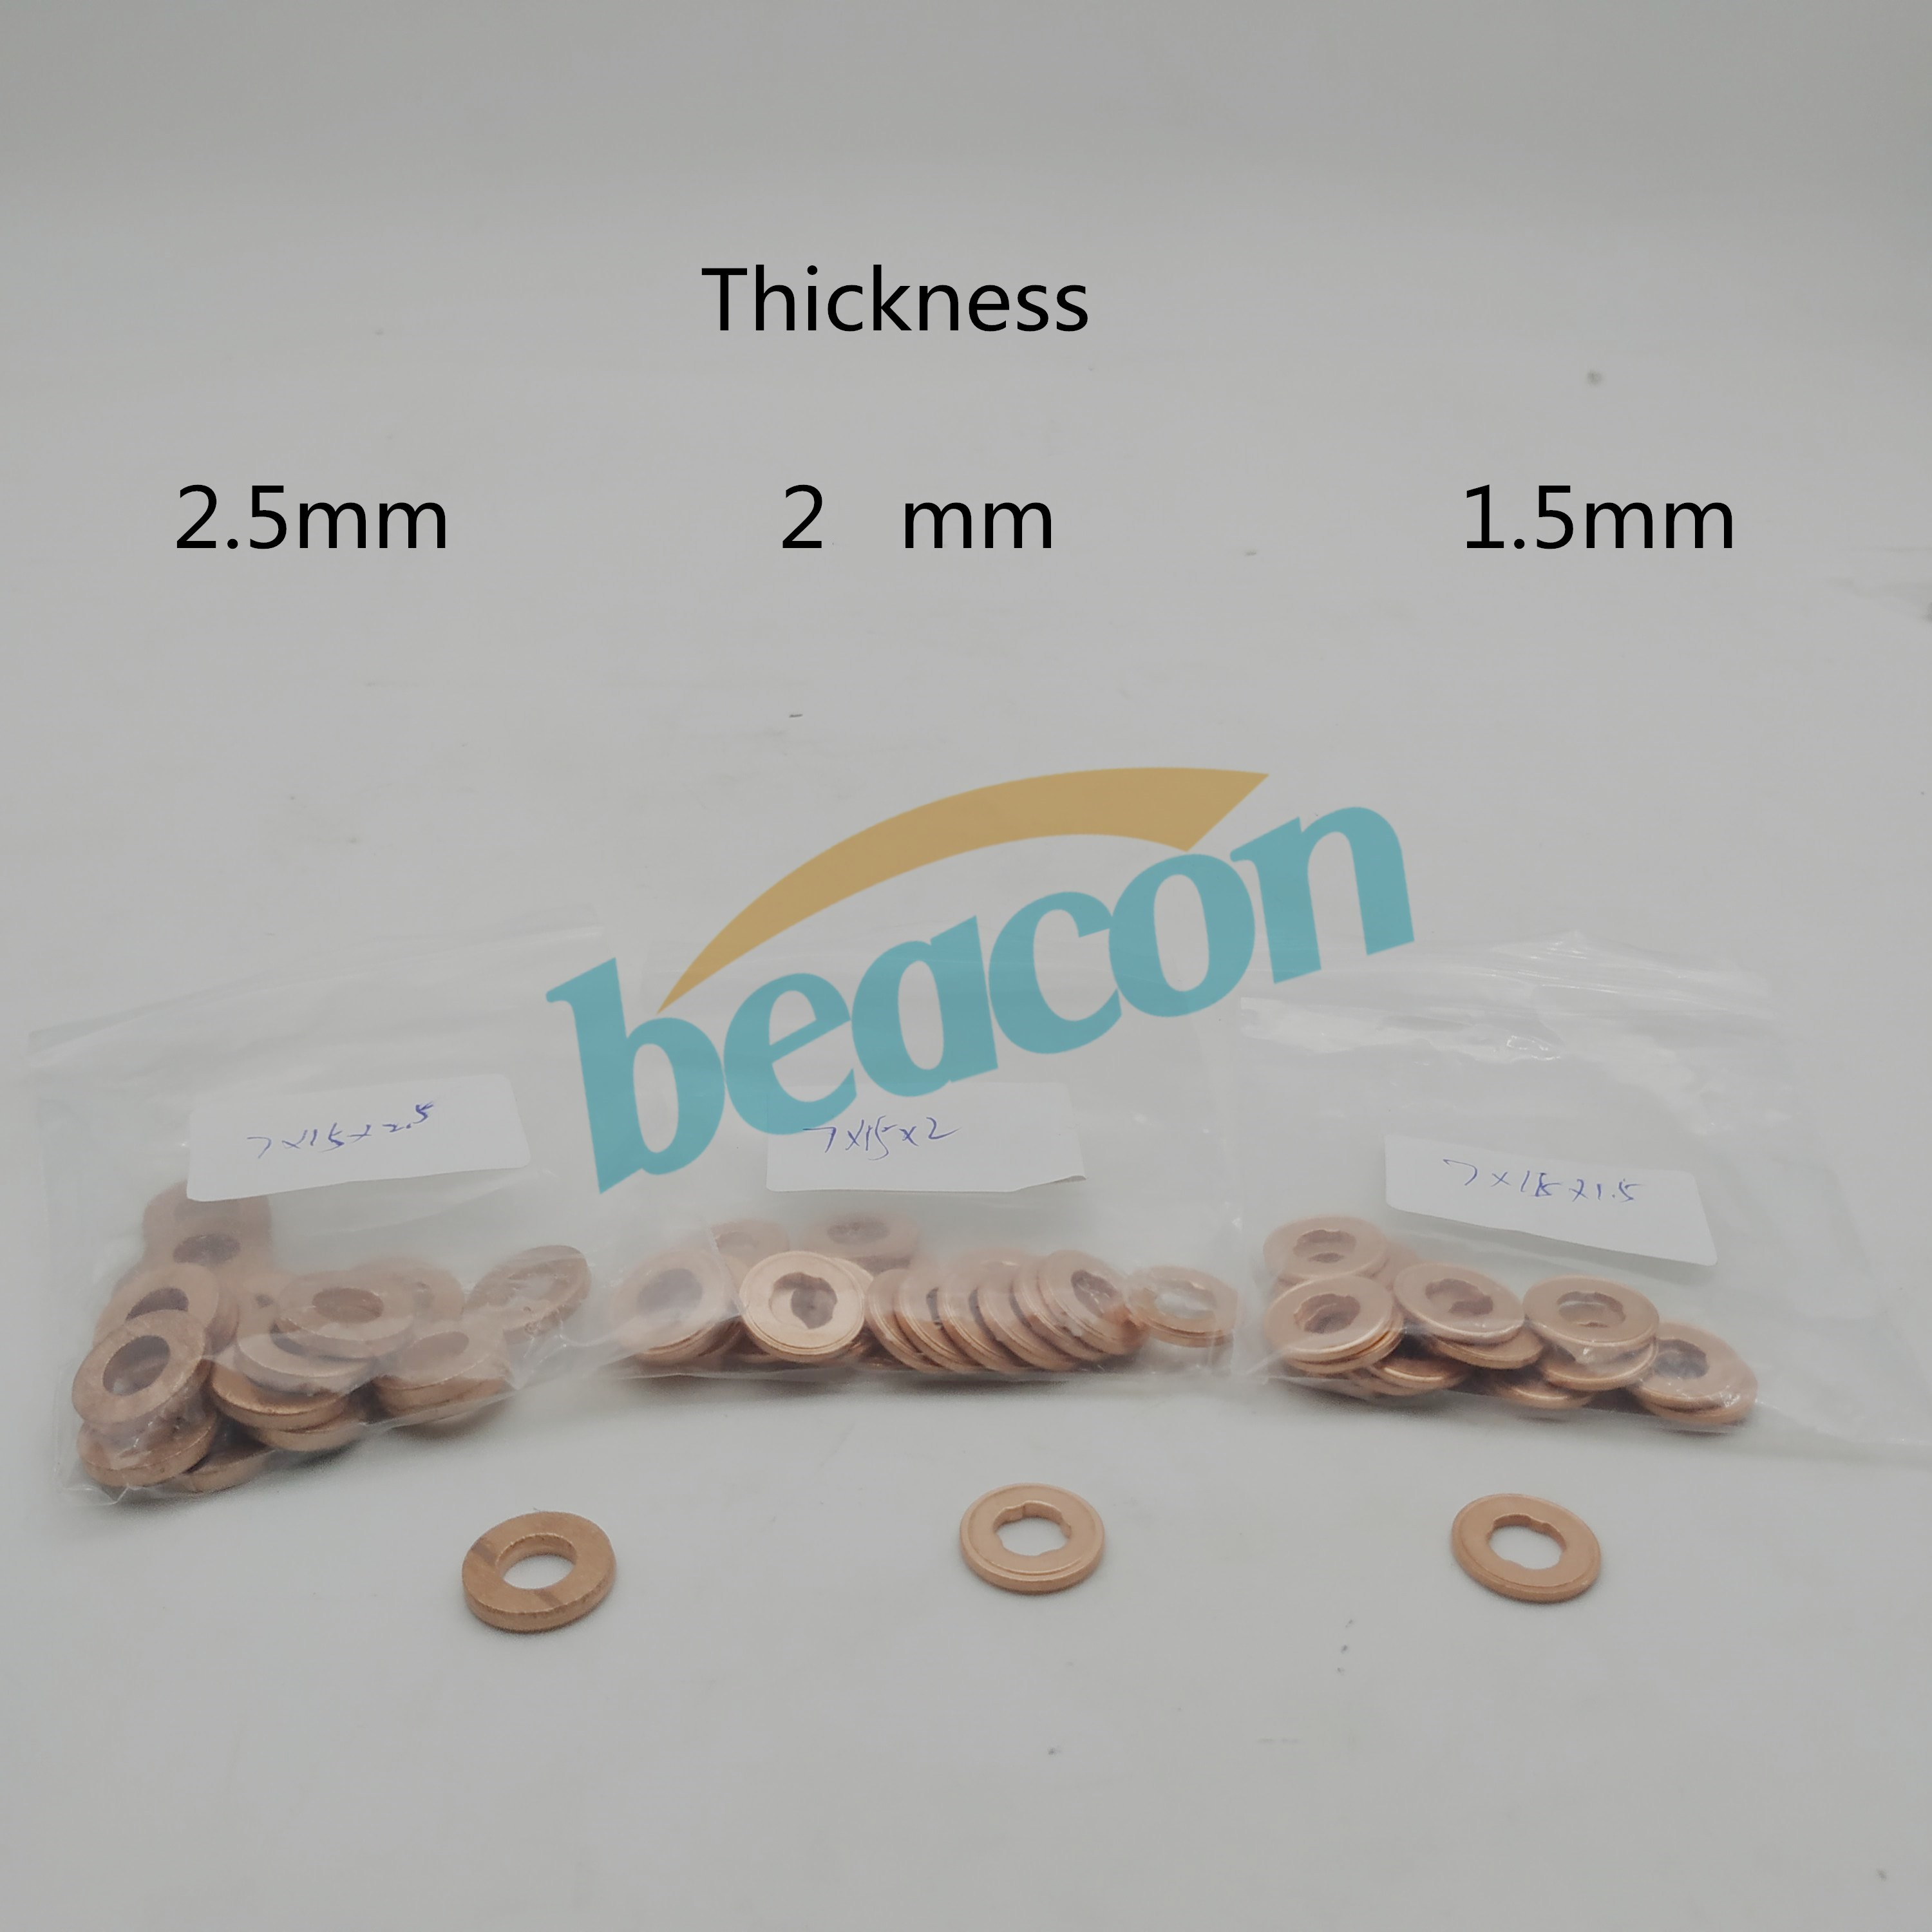 Diesel fuel engine common rail parts copper gasket adjusting shim 1.5mm 2.1mm 2.5mm thickness